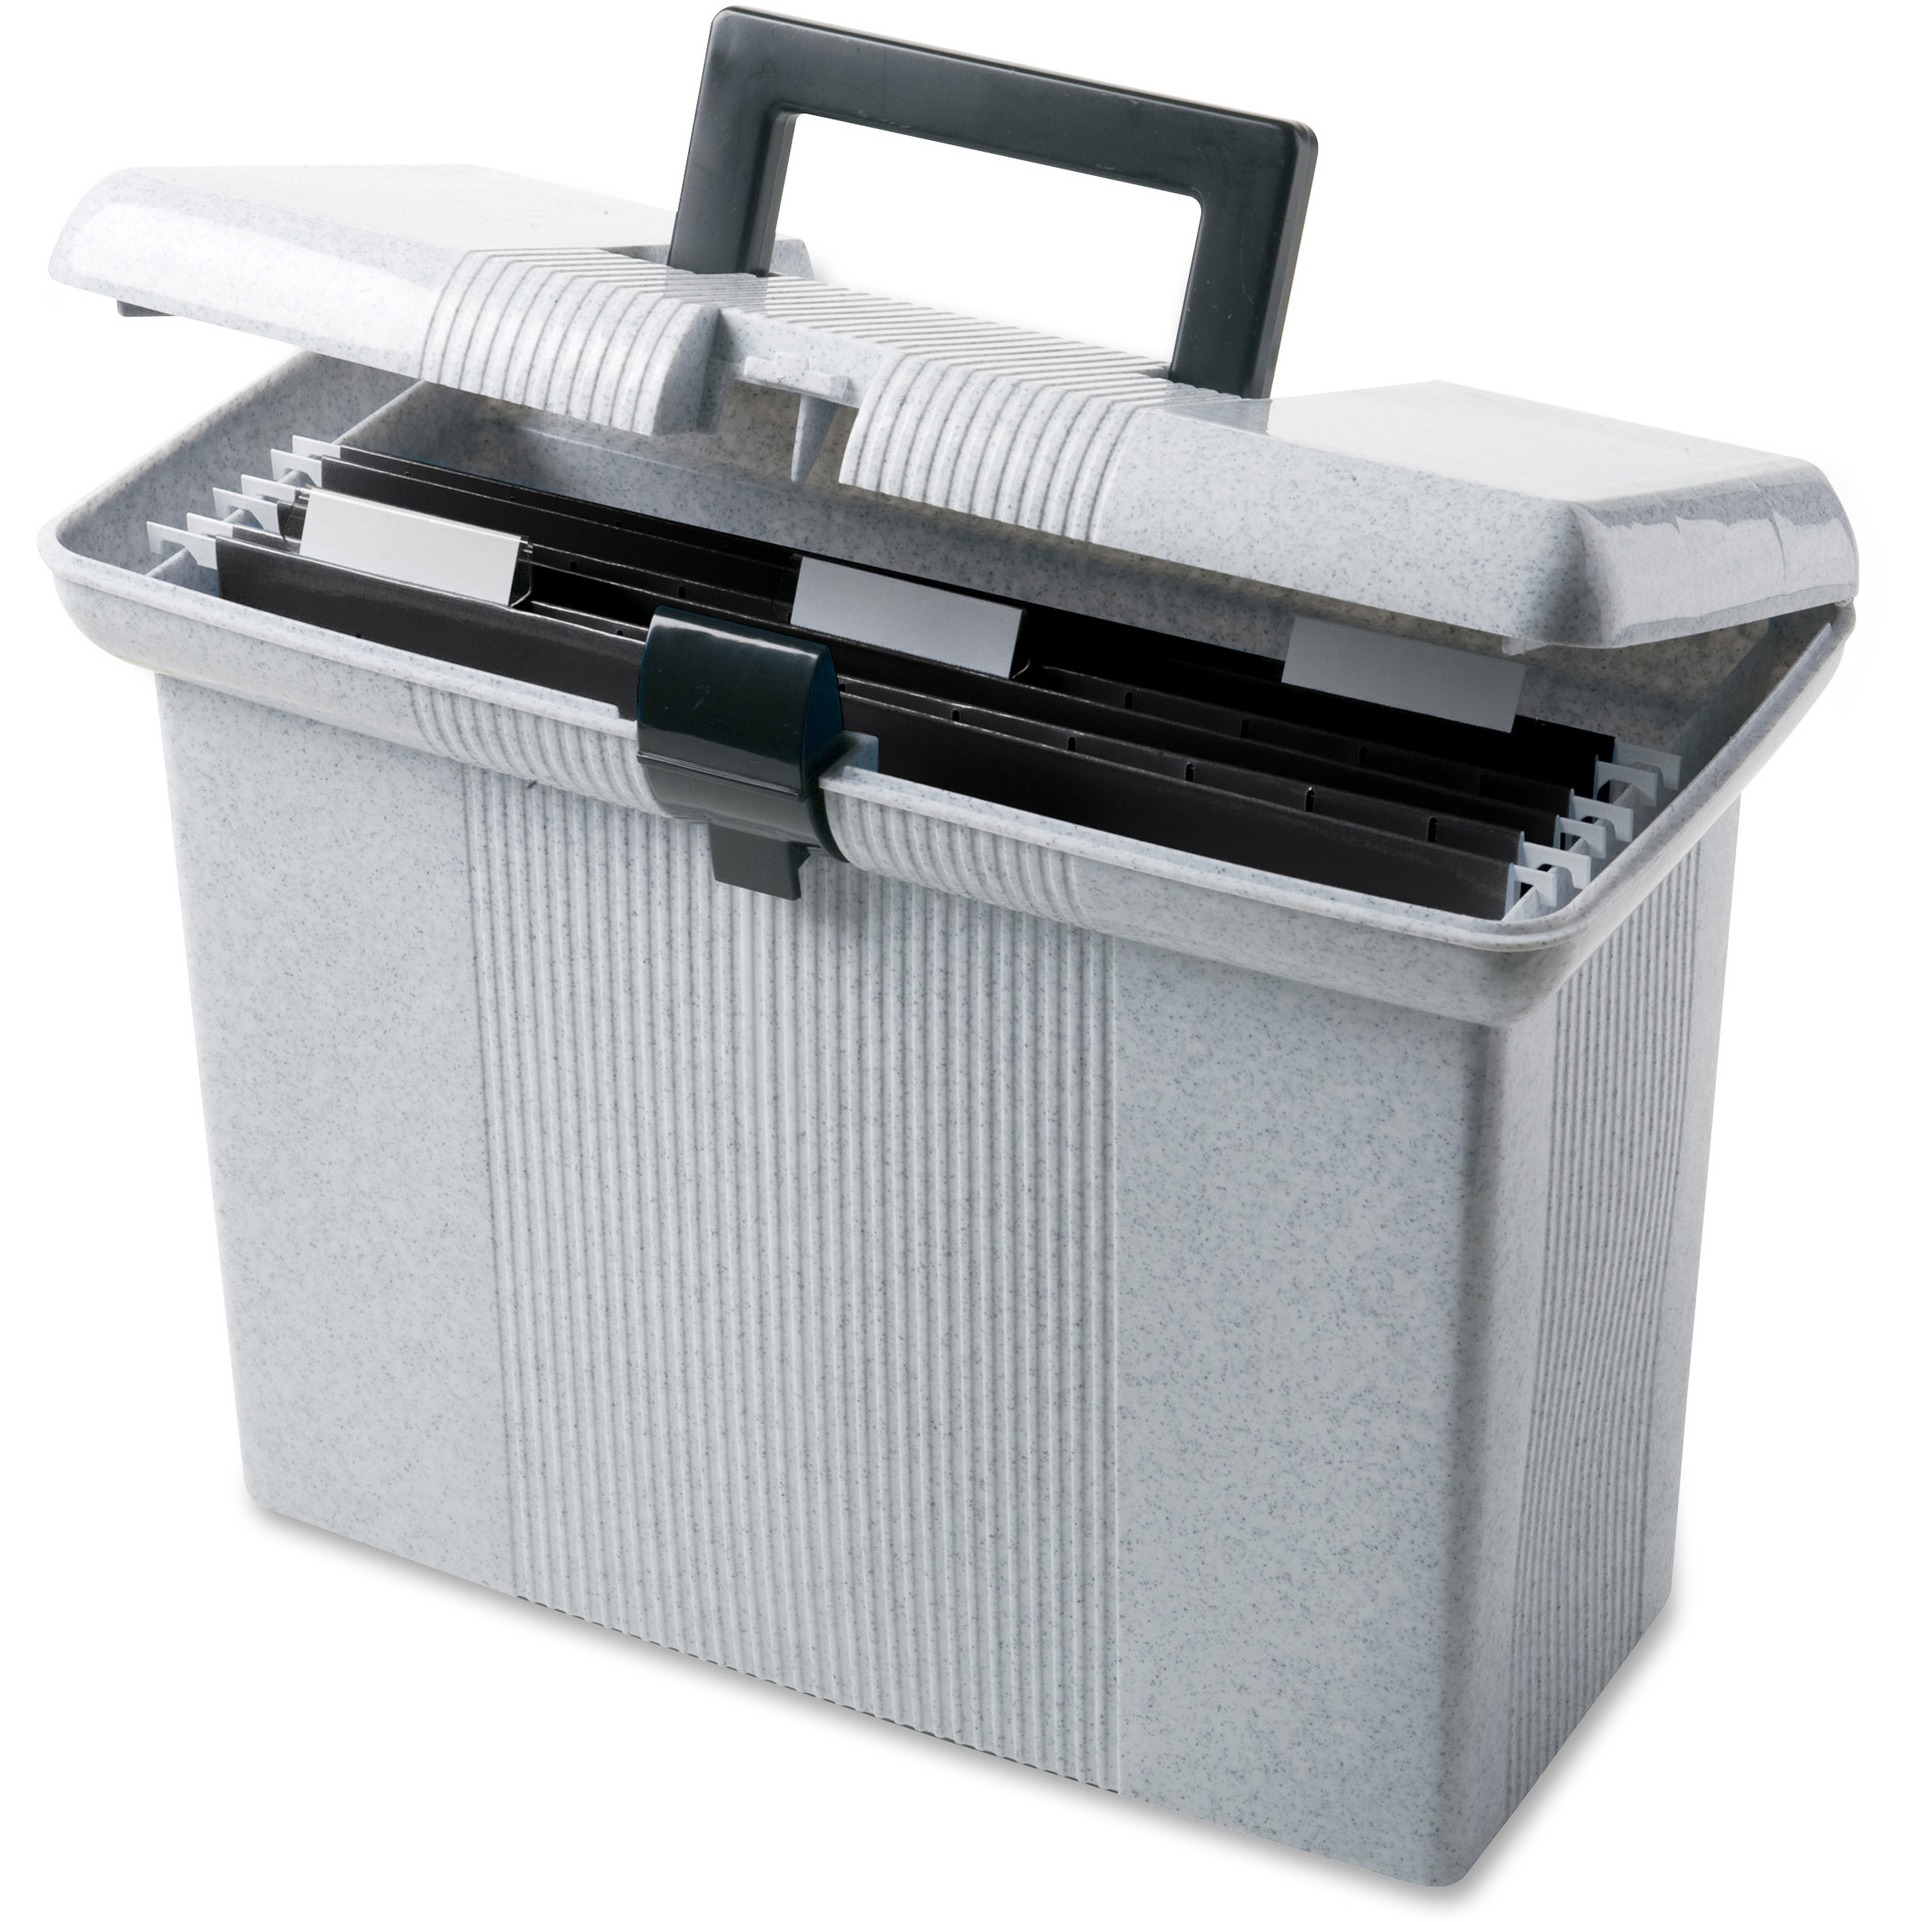 Pendaflex Portafile File Storage Box, Granite, 1 Each (Quantity)